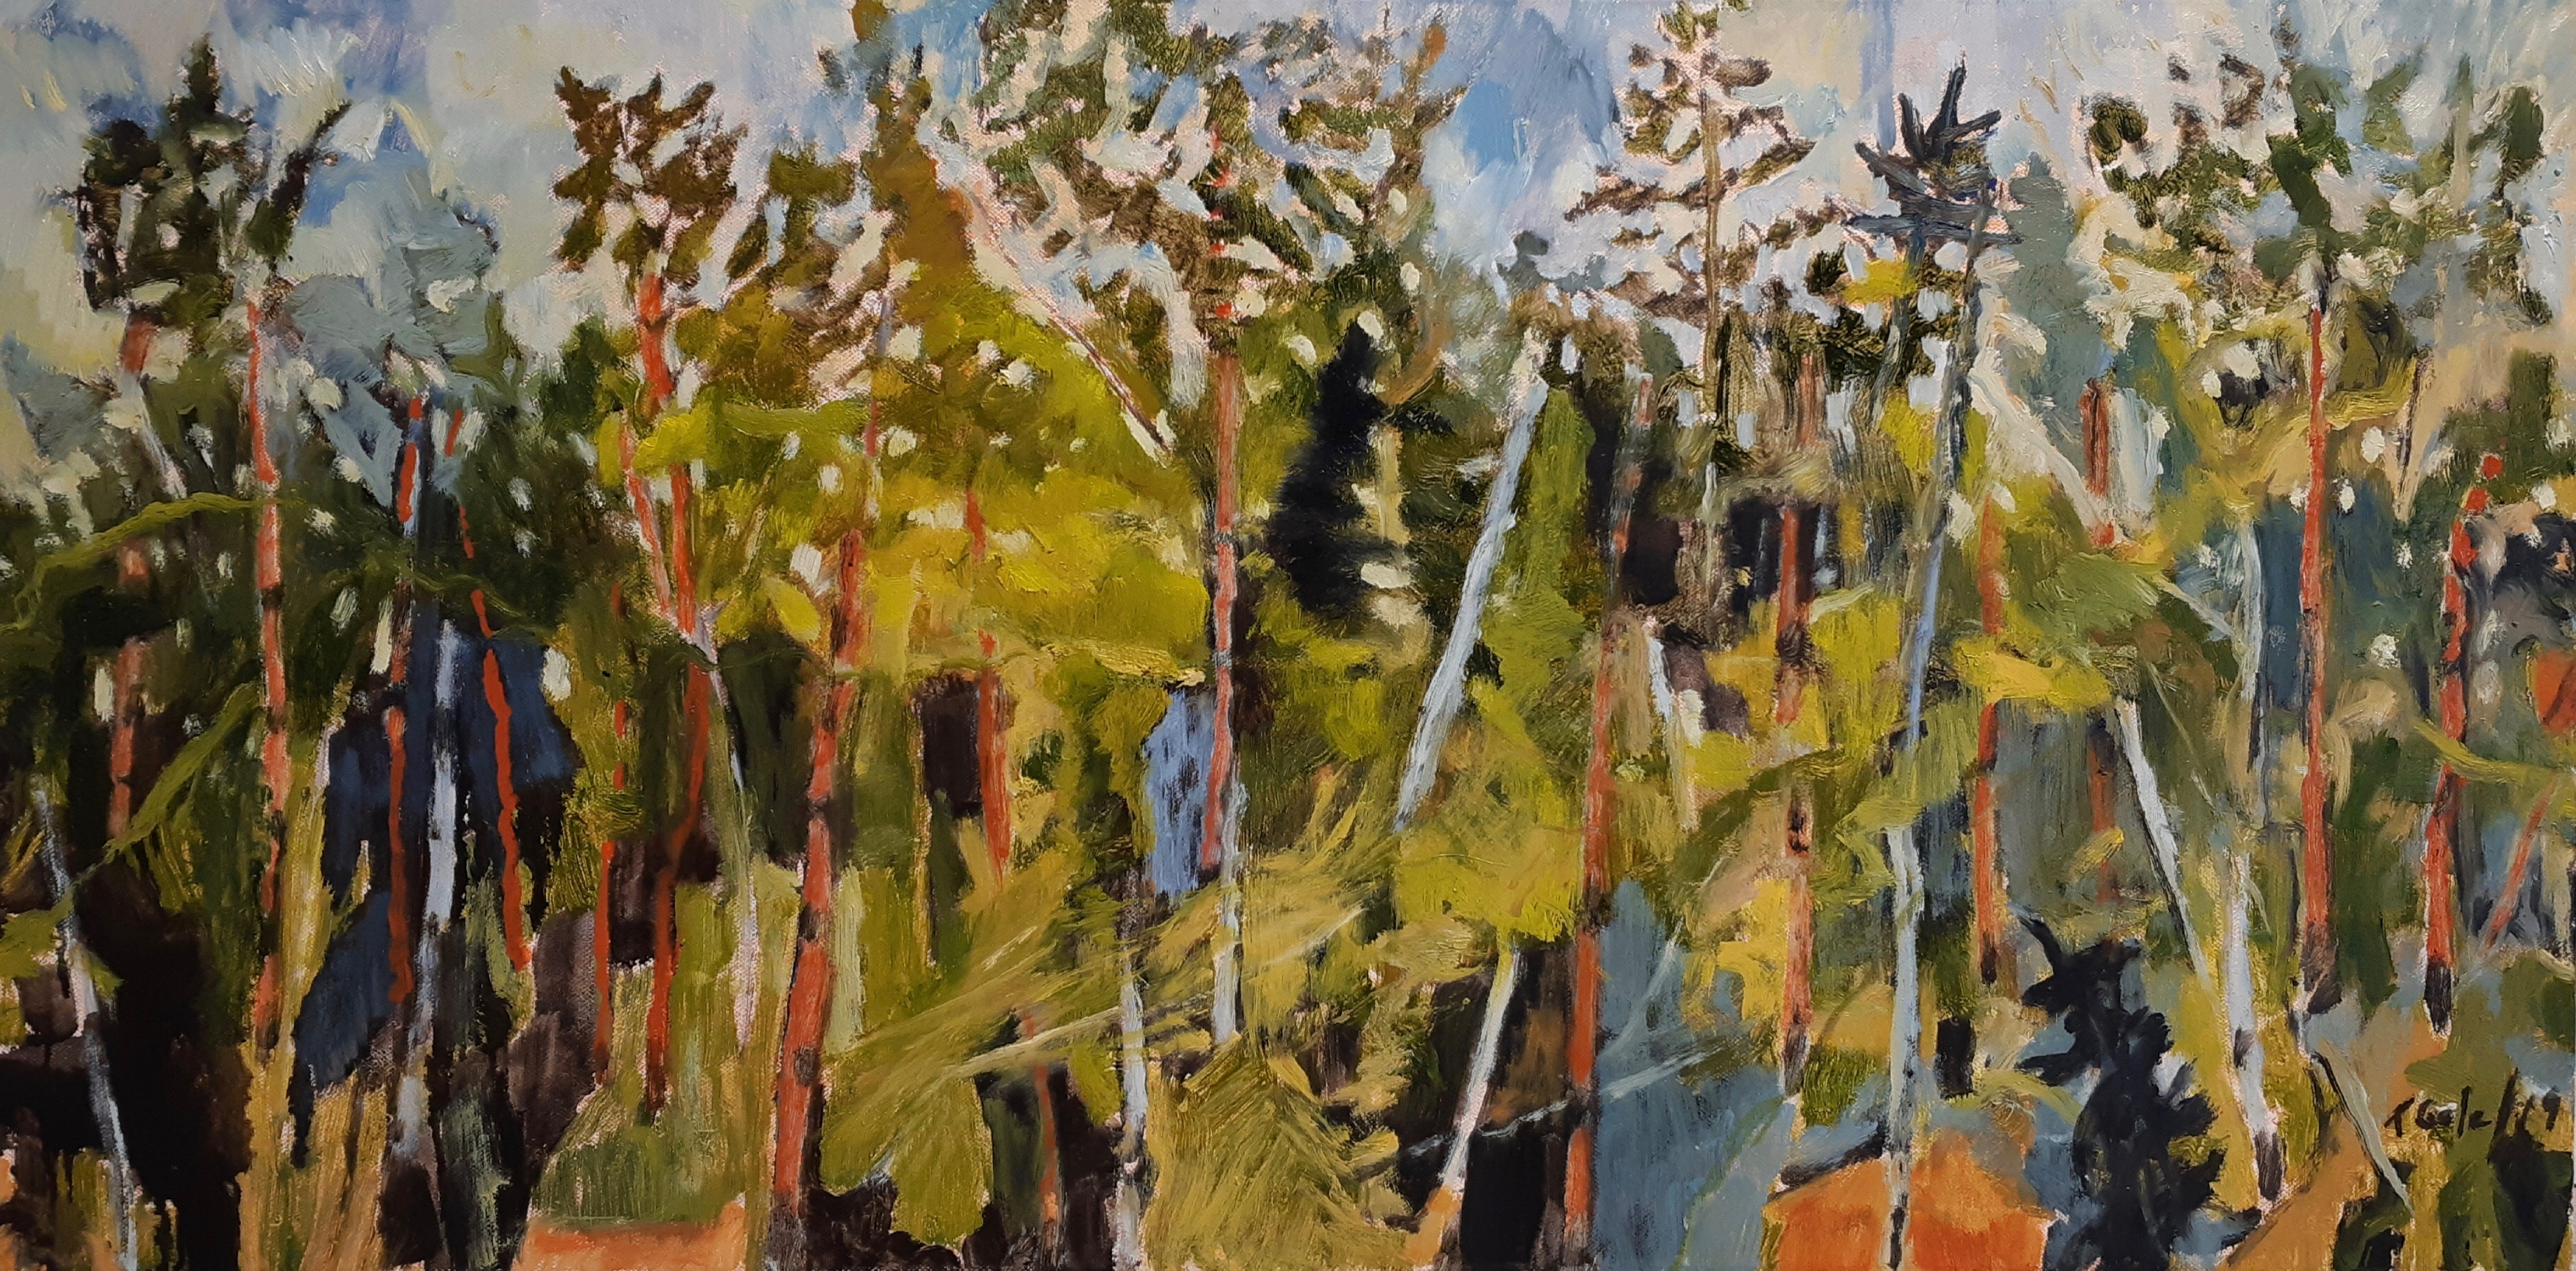 FOREST SKETCH - 18X36 - OIL ON CANVAS - 2019